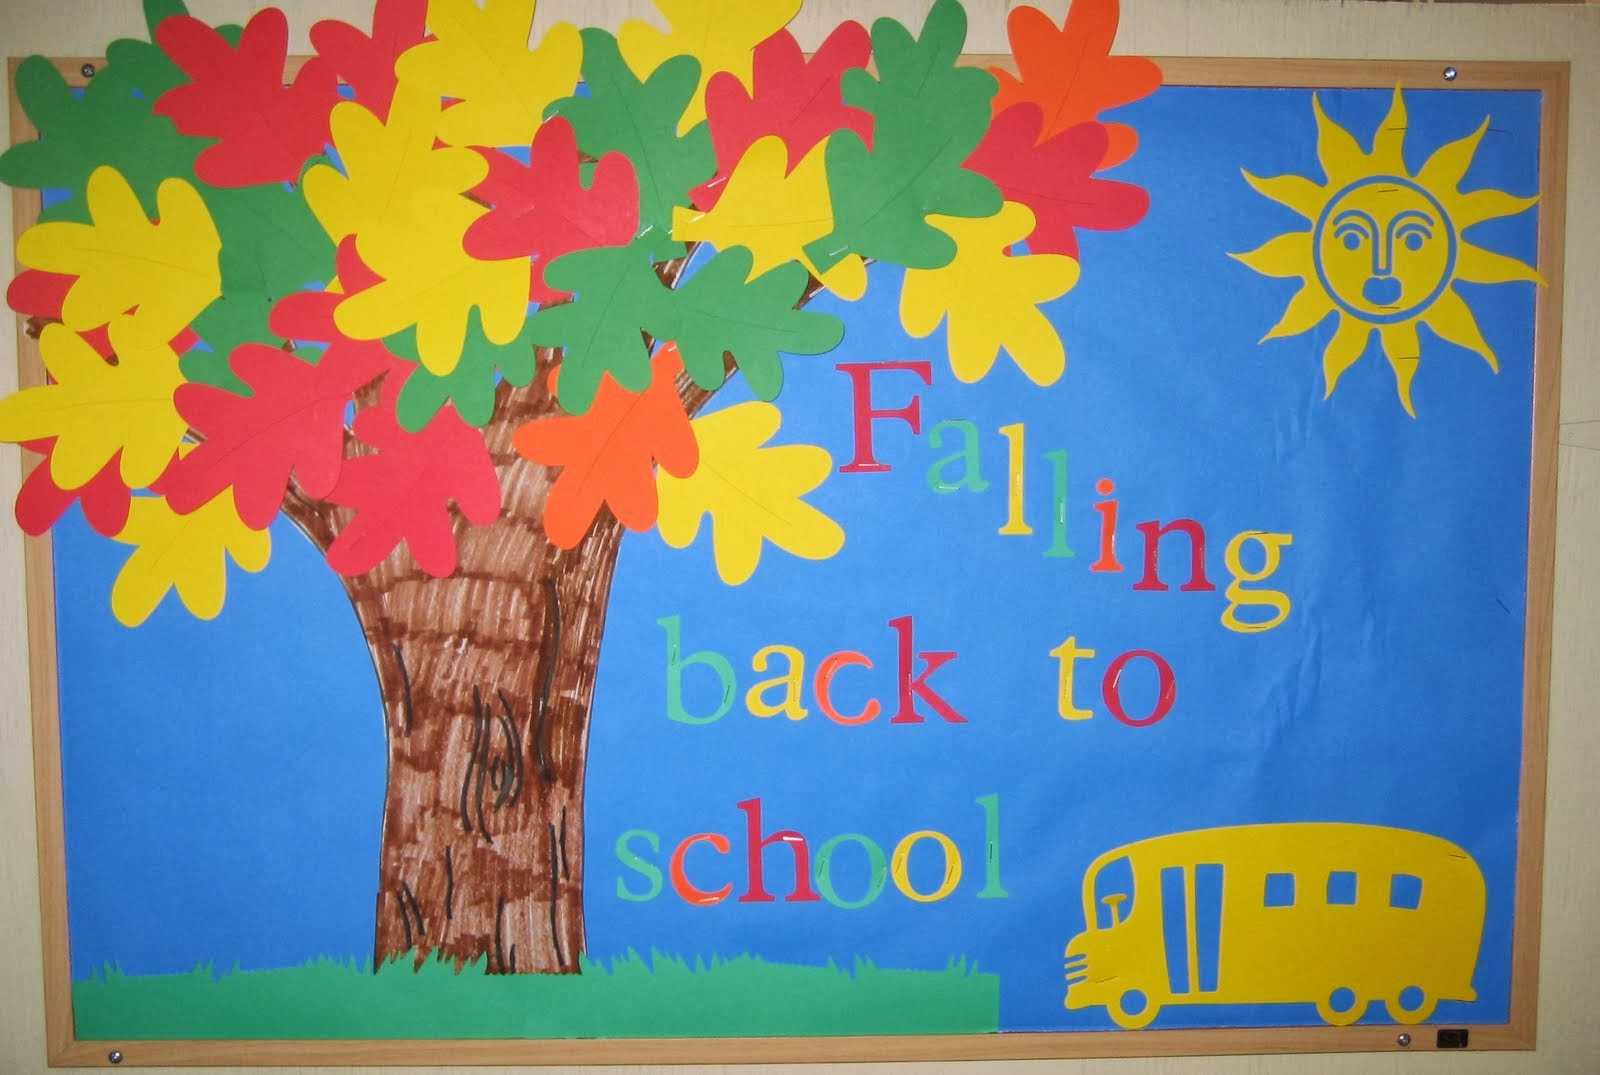 Primary education board back to school bulletin board ideas for Idea door primary 2014